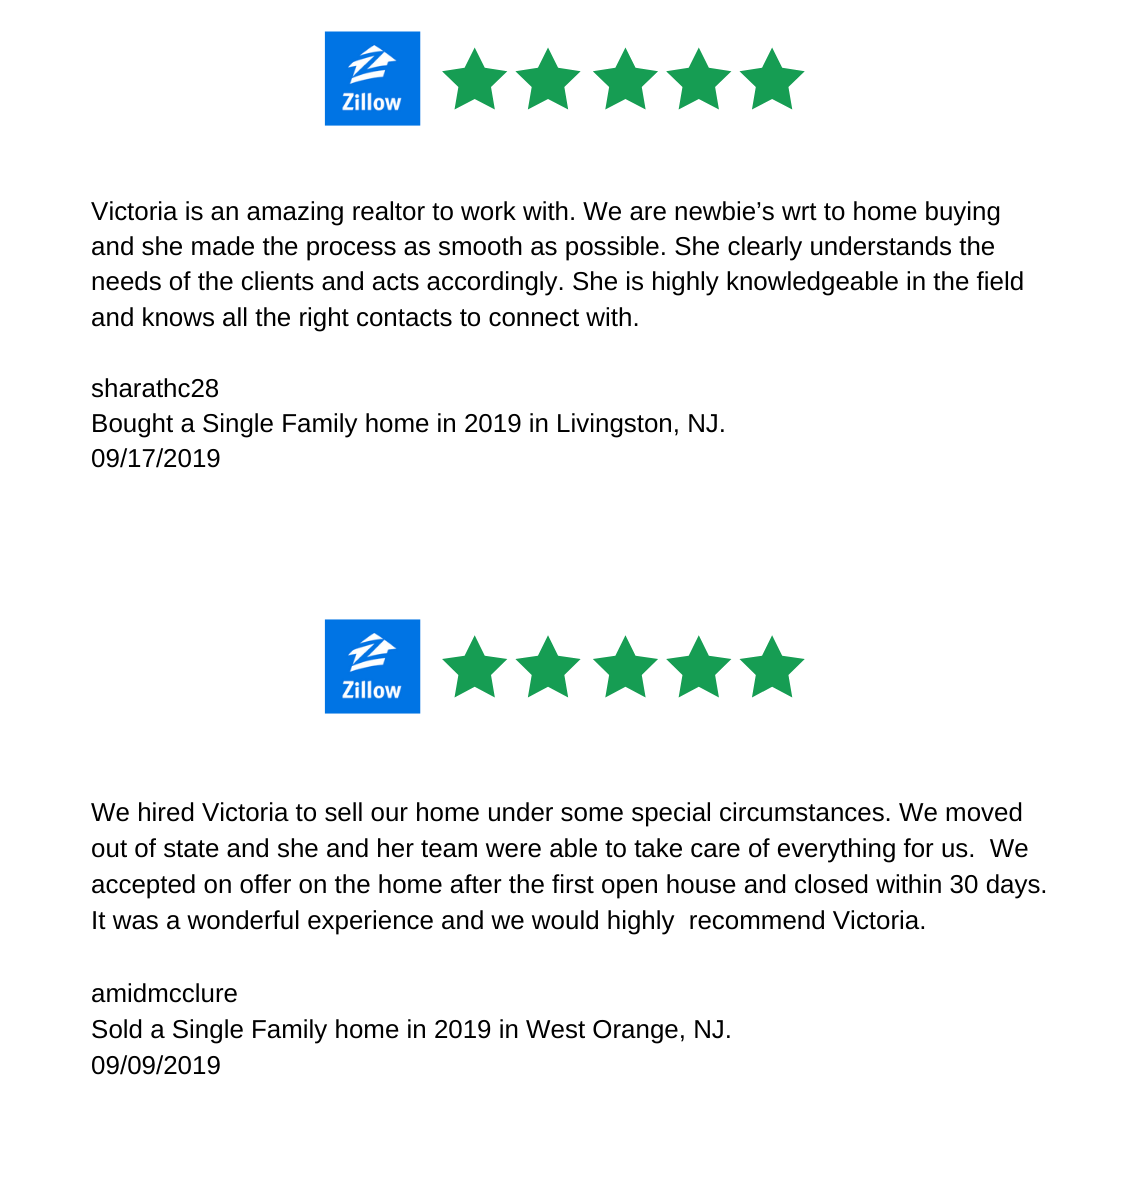 Zillow Reviews for Victoria Carter, Realtor